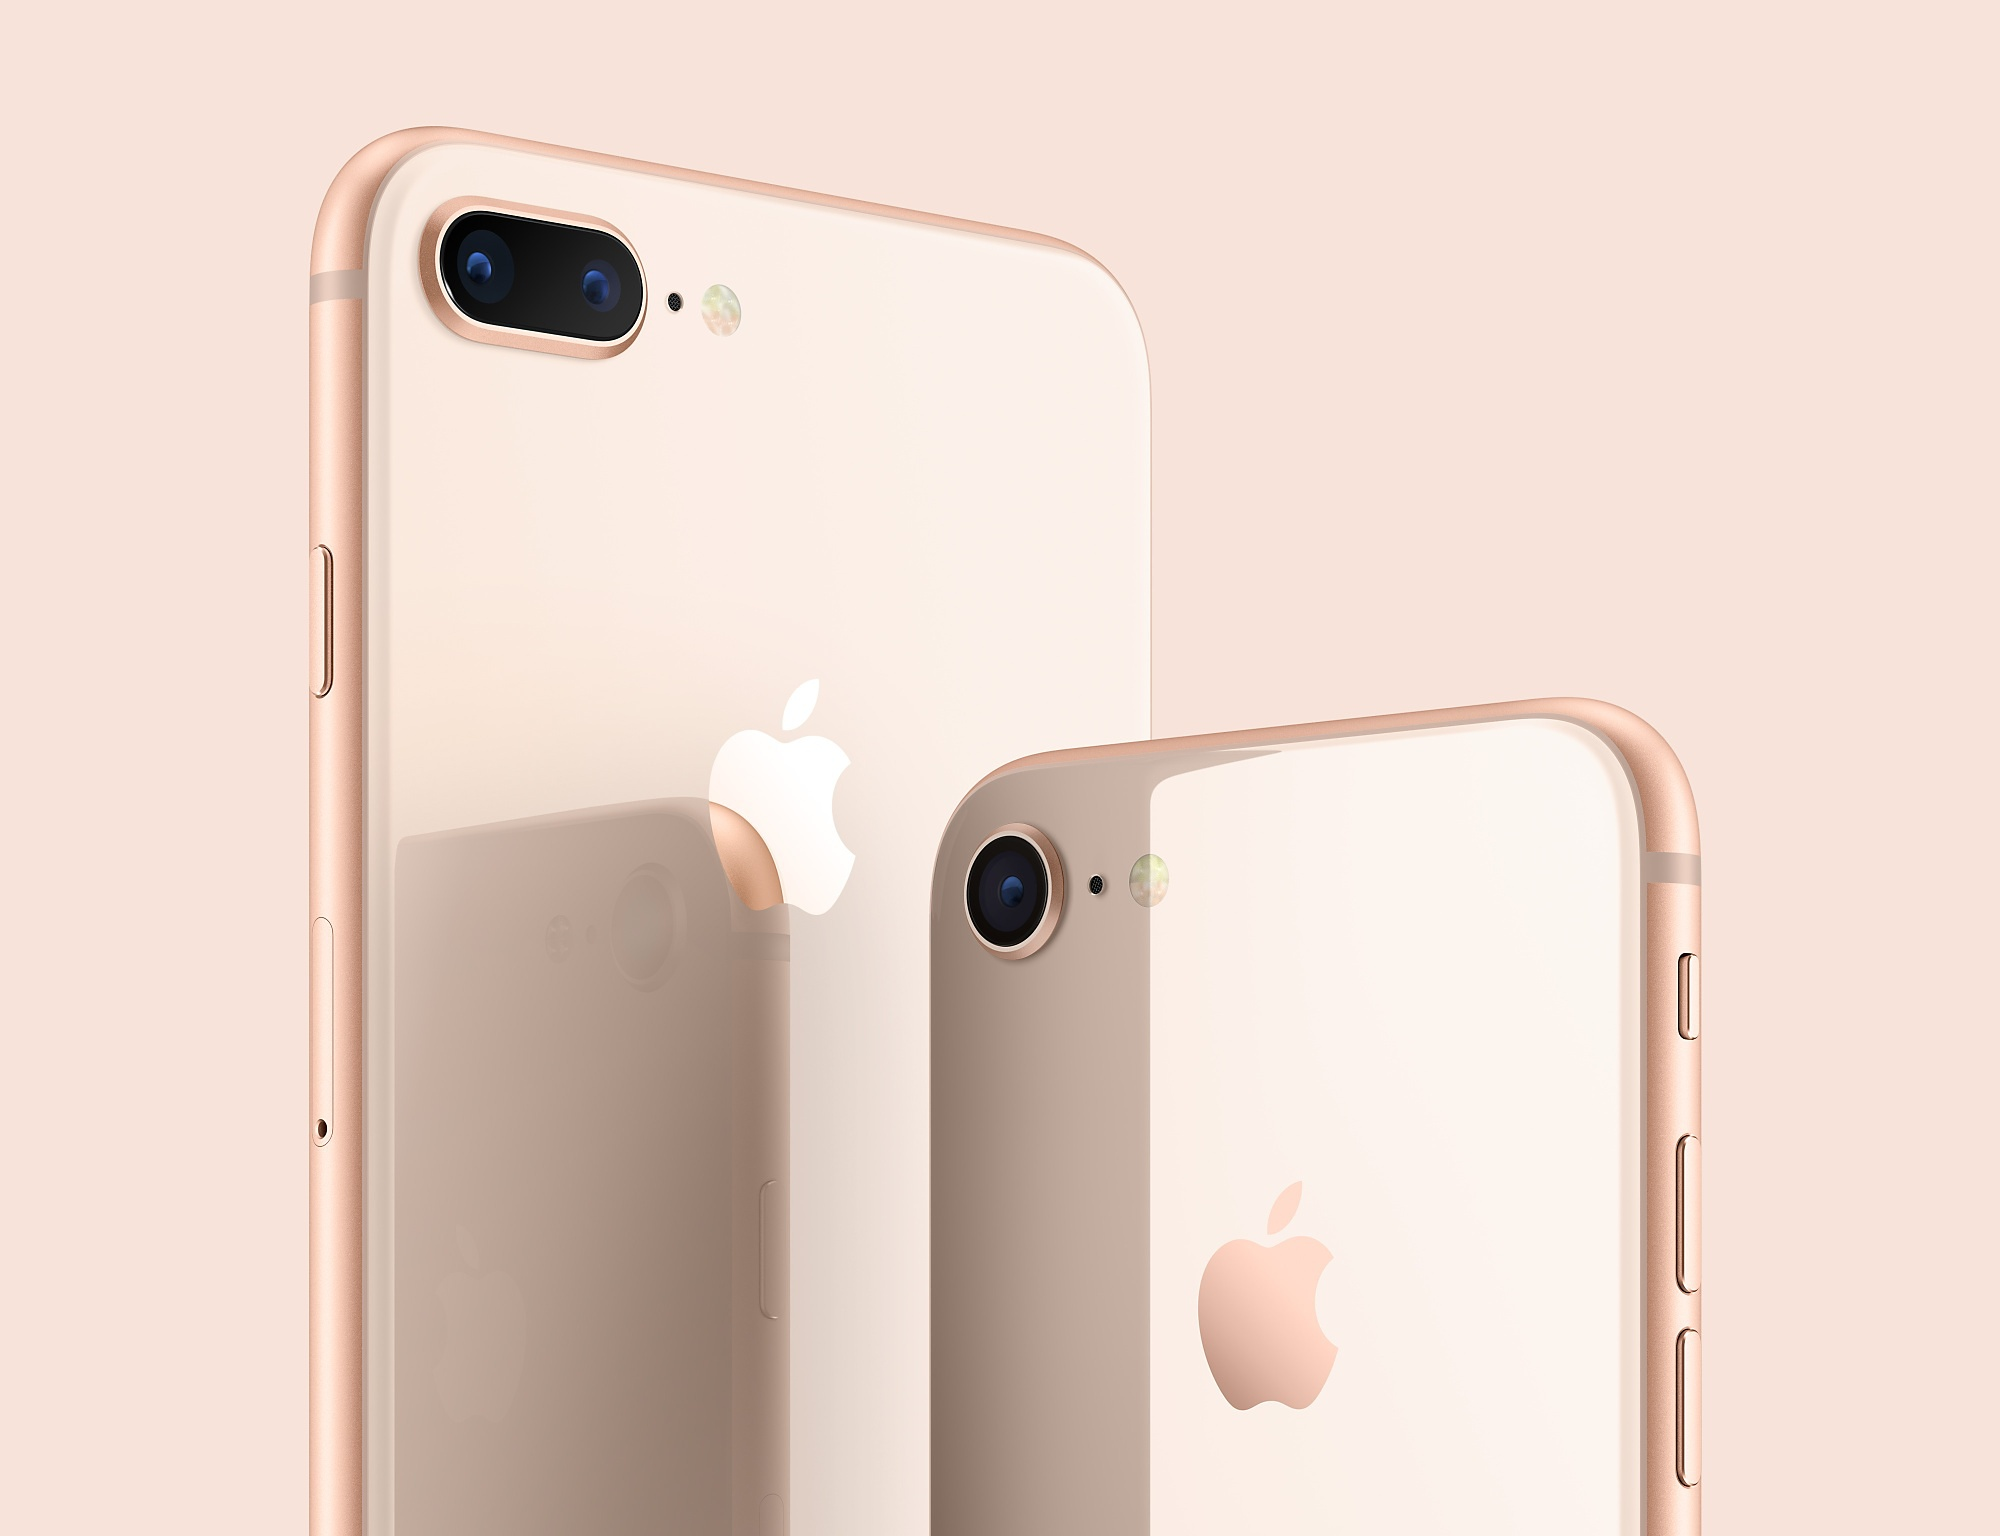 Gold Color Iphone X Rumored To Have Started Production 9to5mac